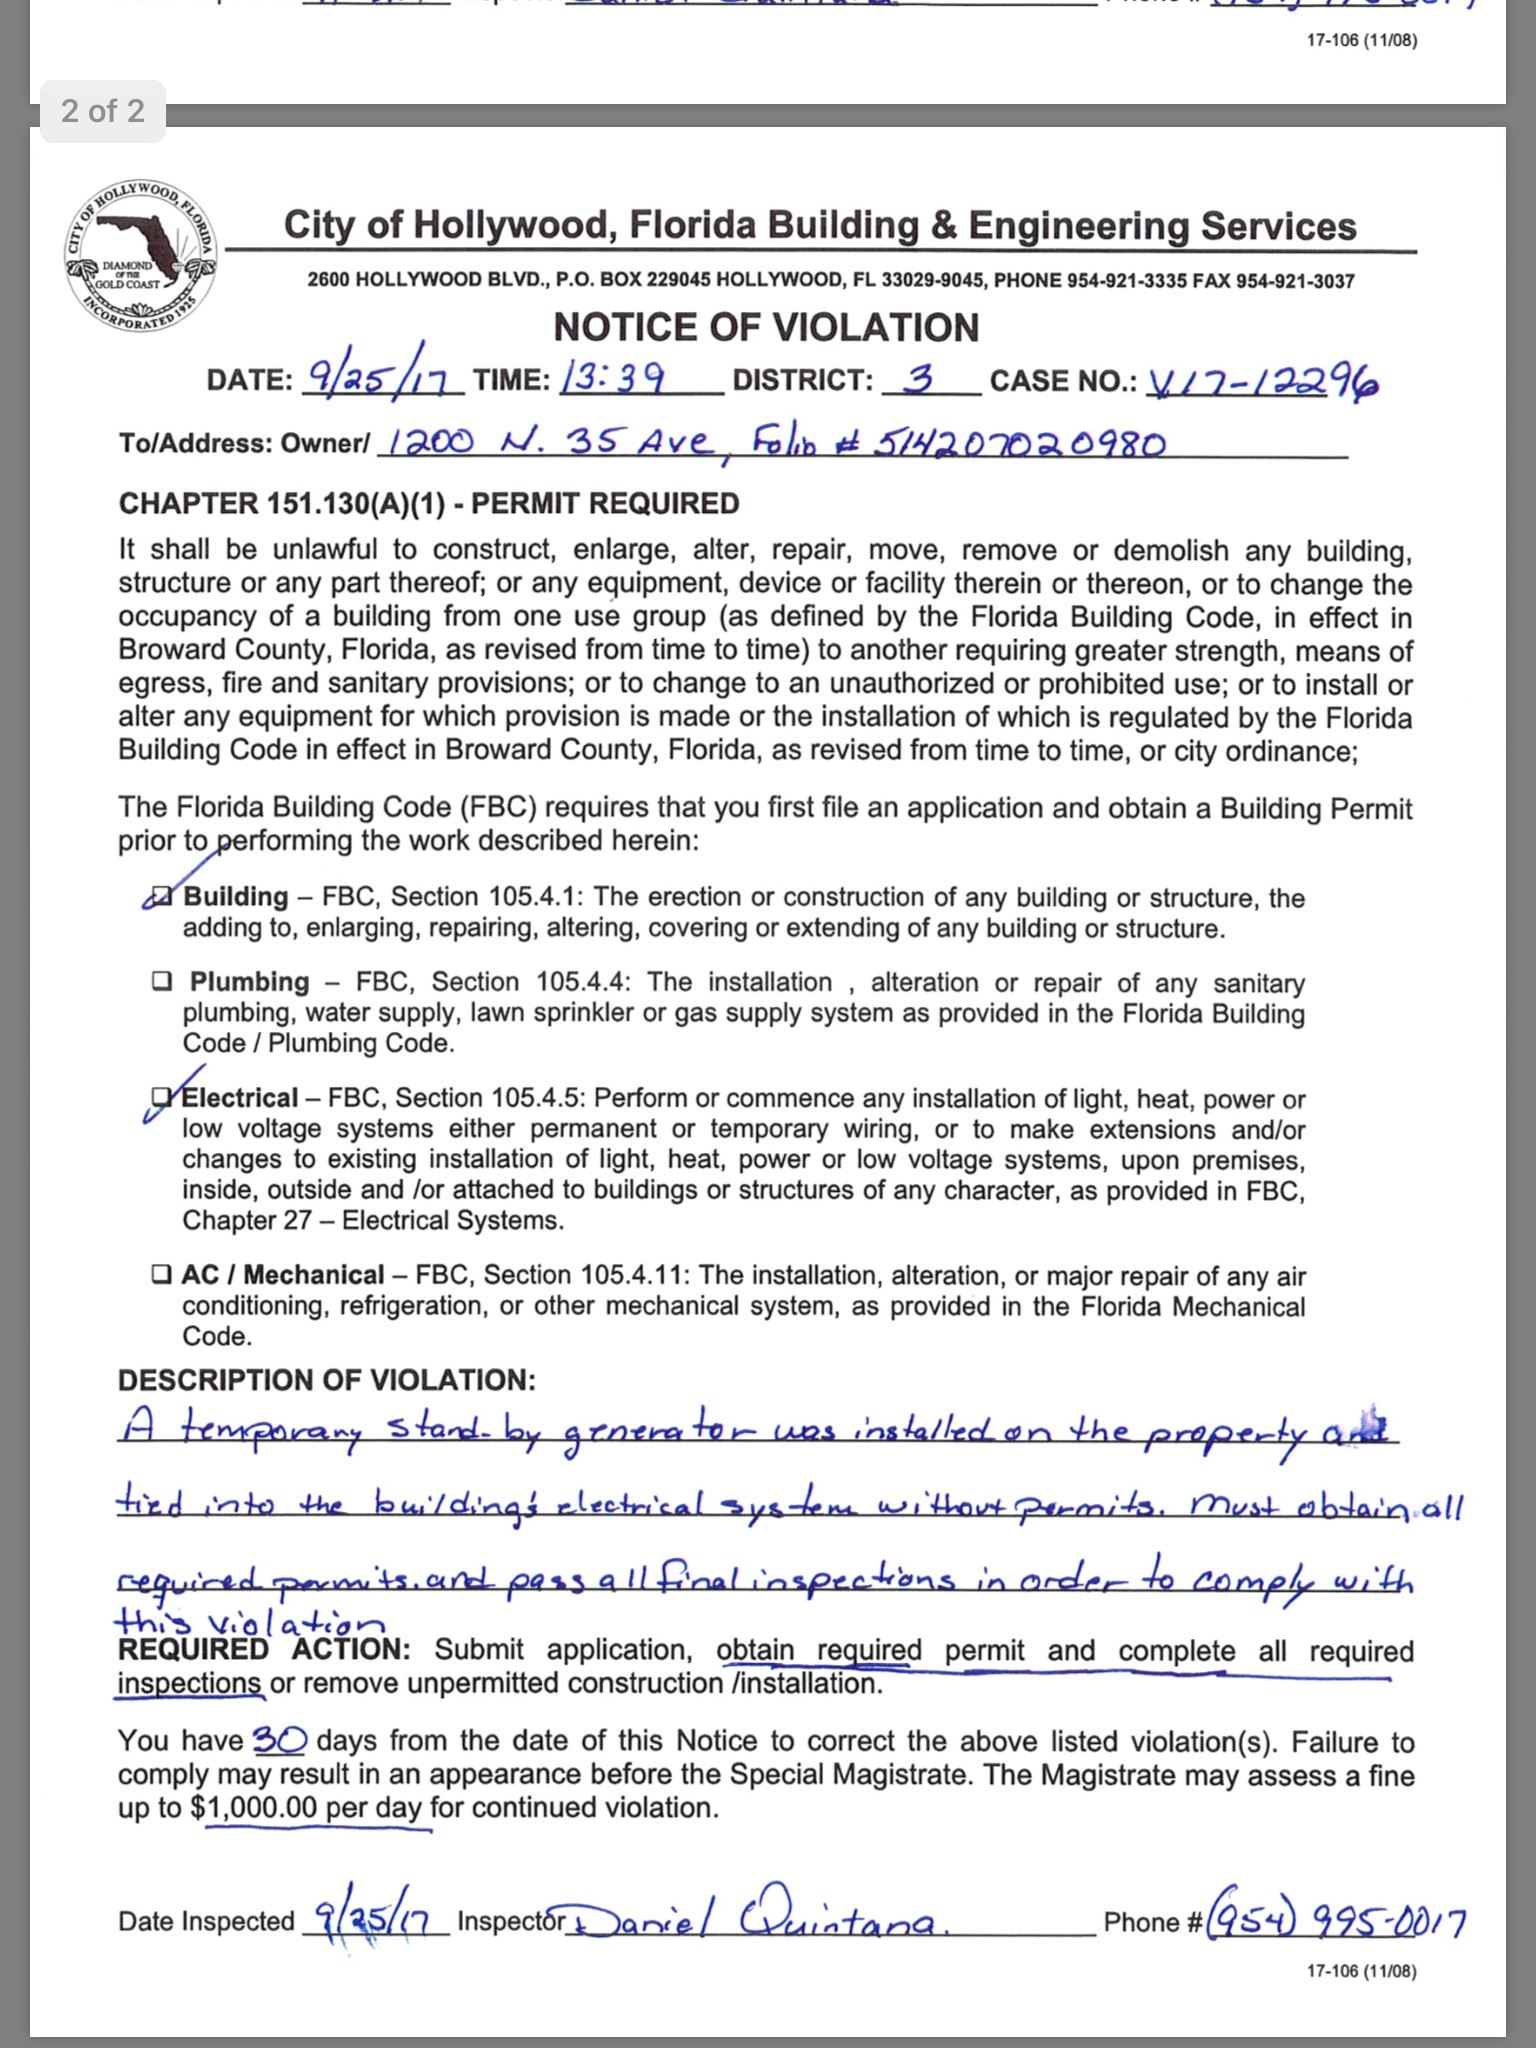 Unpermitted cooling tower among violations found at Hollywood...